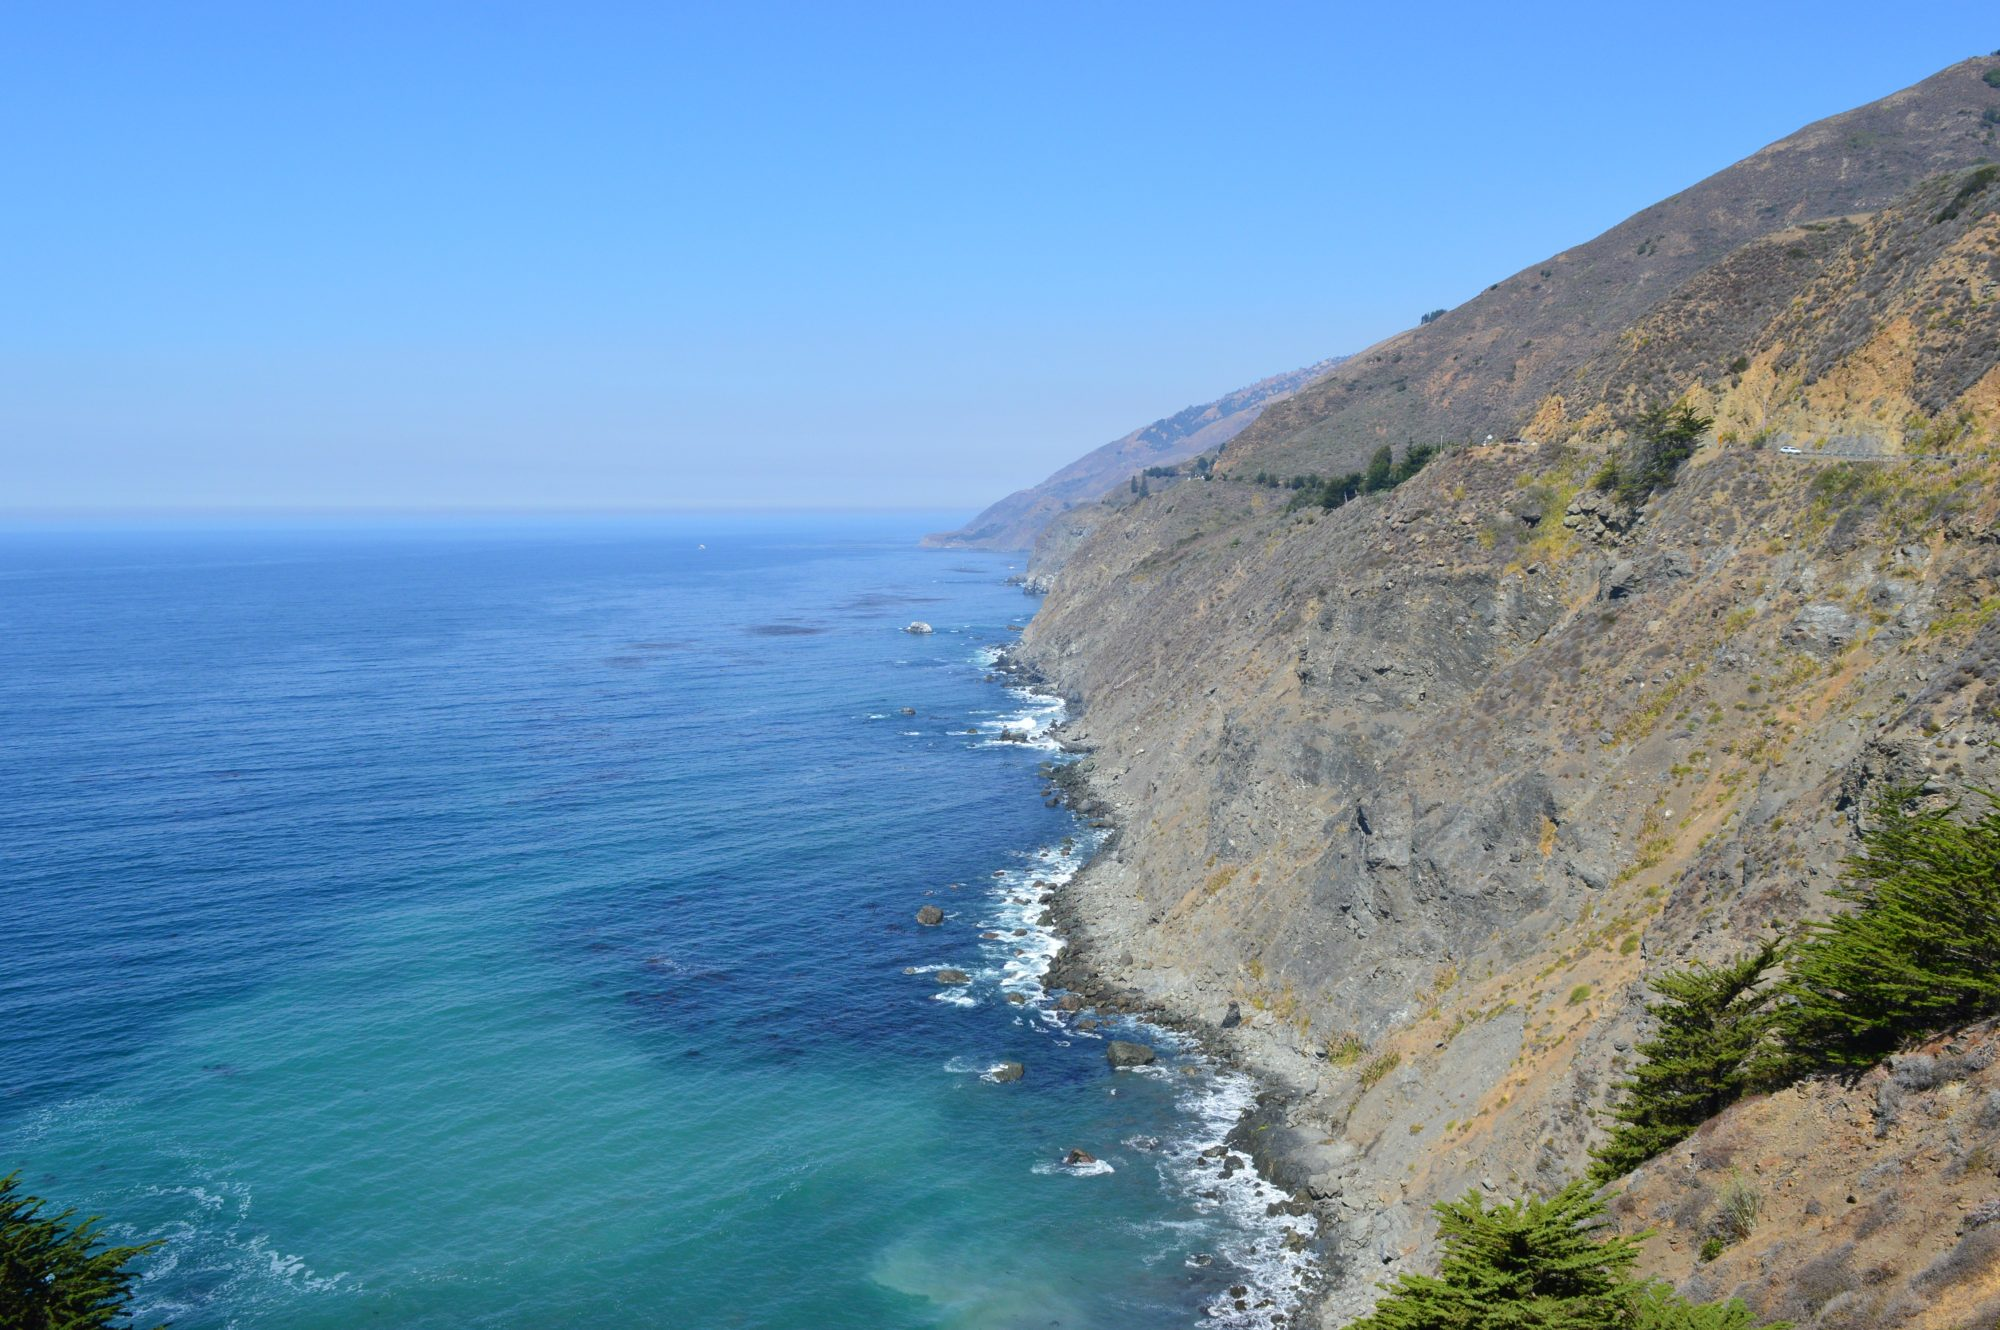 Ragged Point – Portal to Big Sur